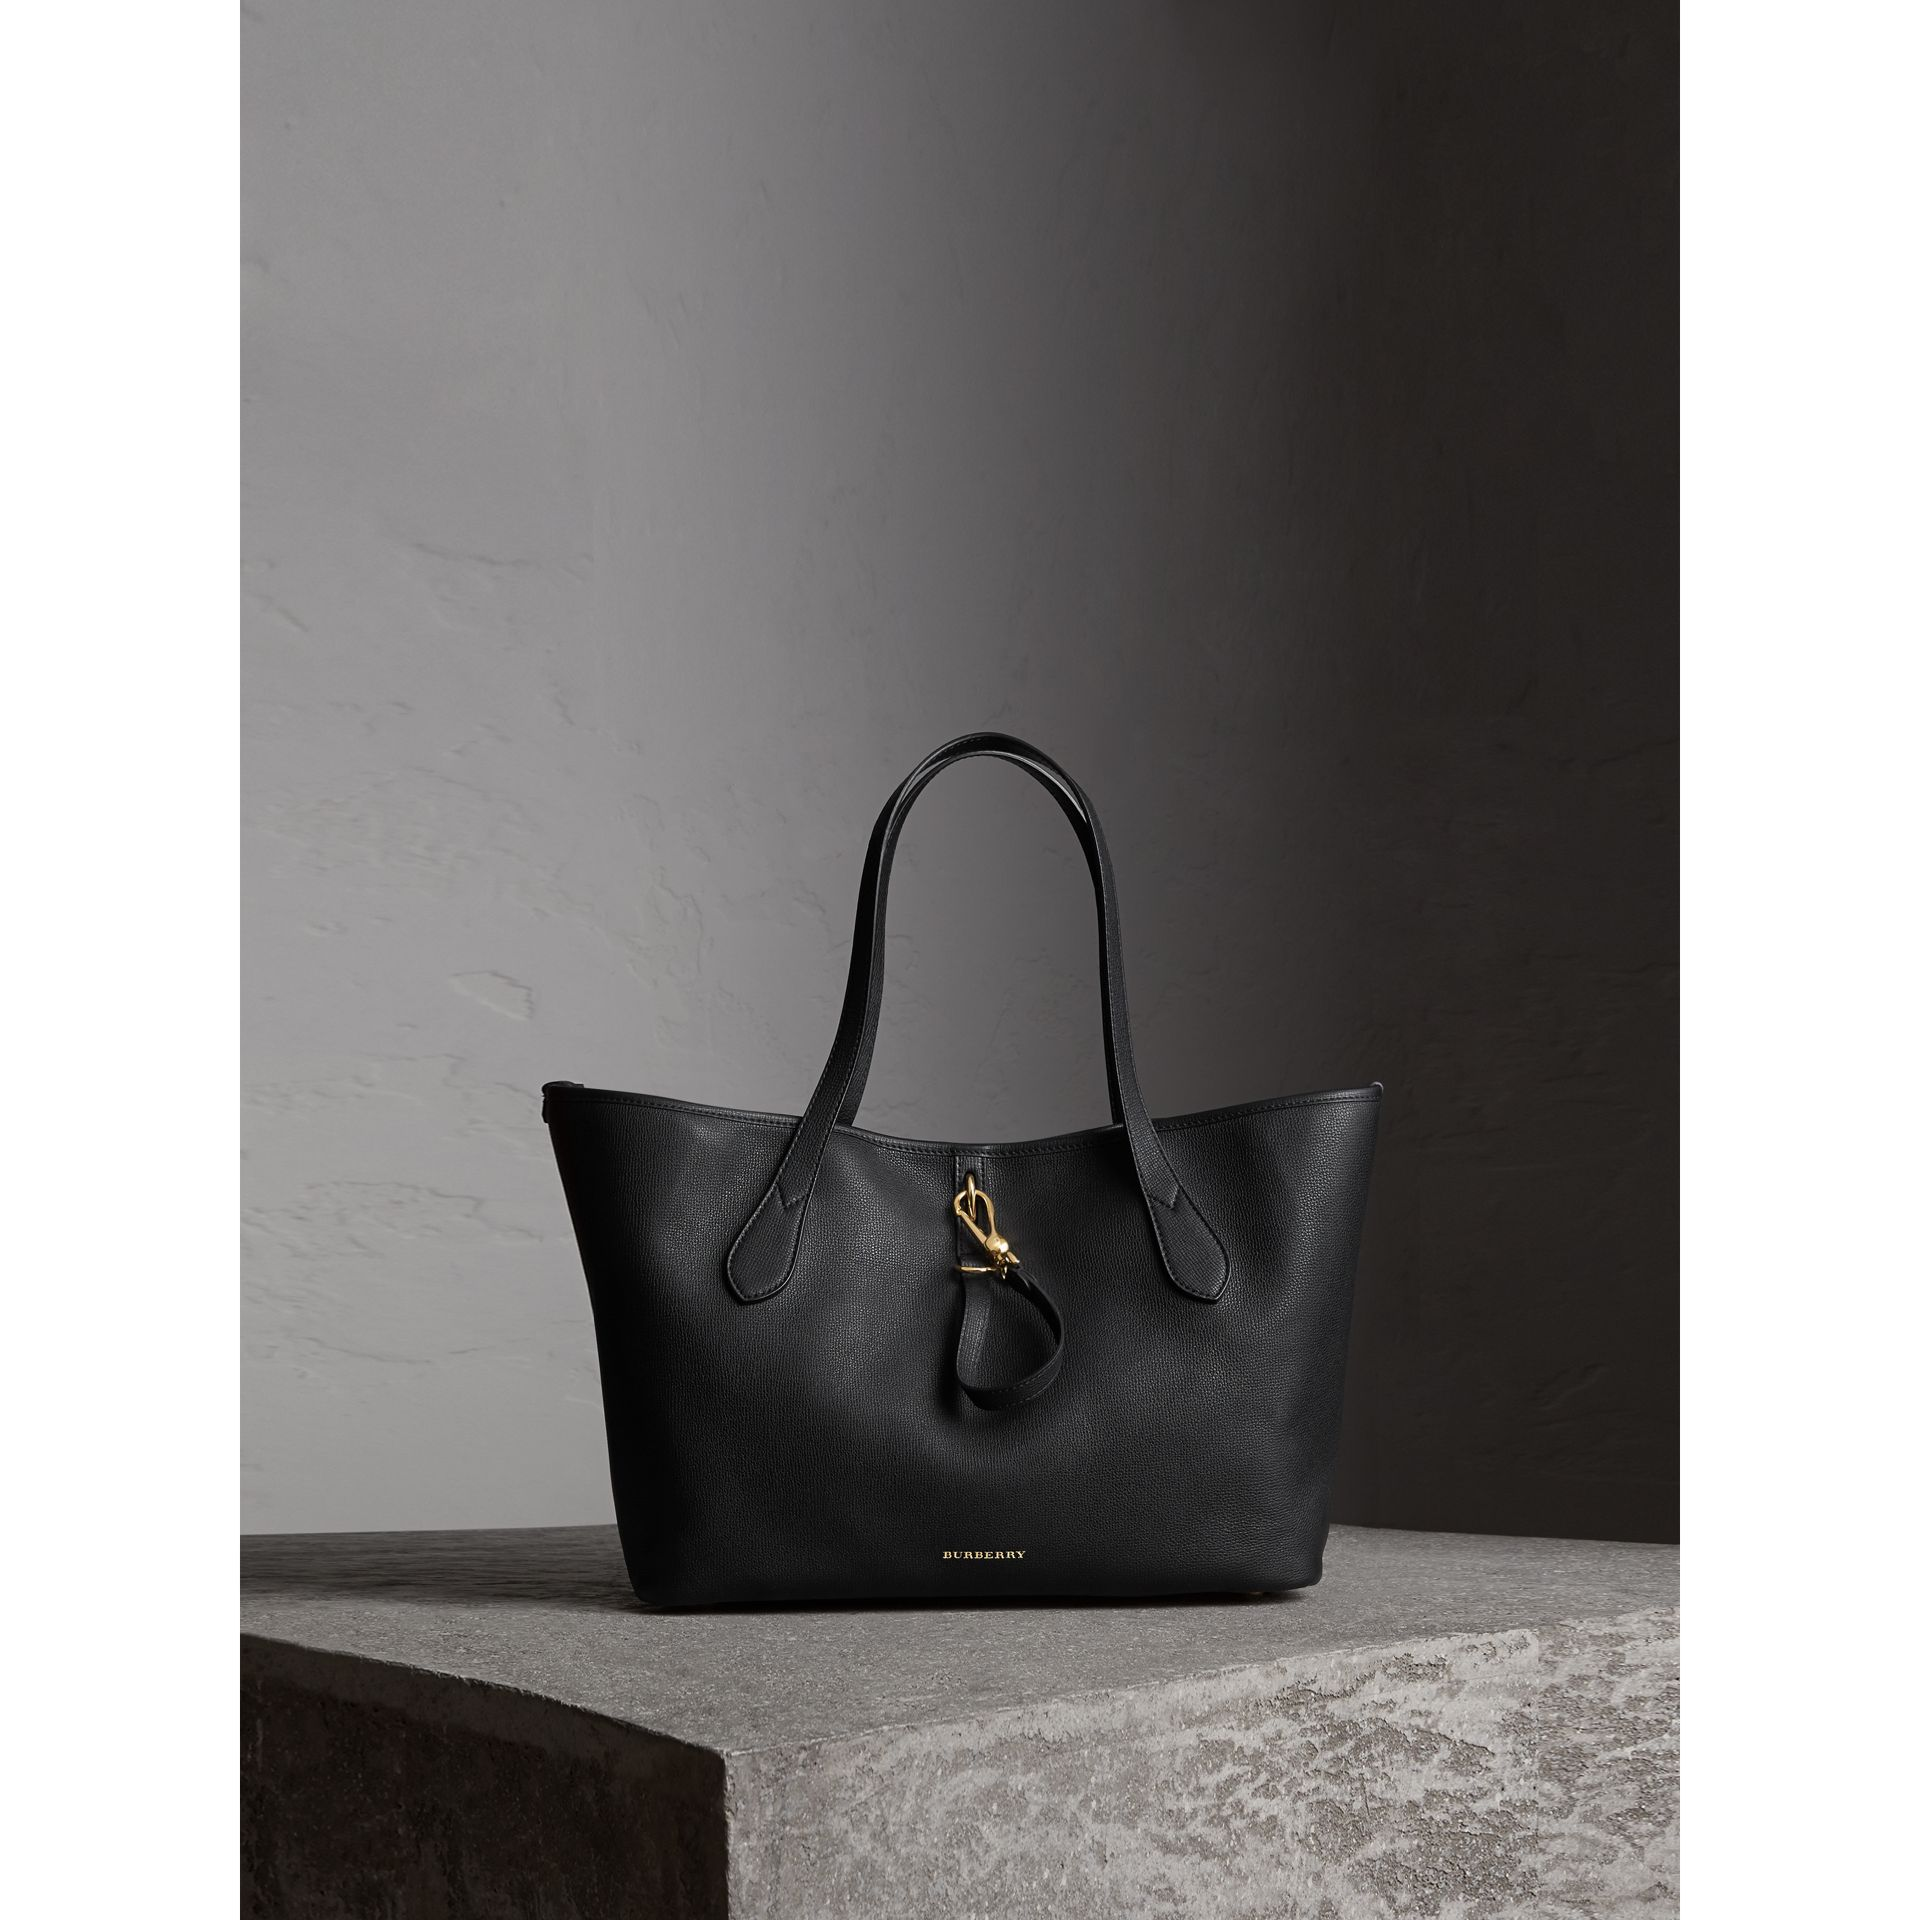 Sac tote medium en cuir grainé (Noir) - Femme | Burberry - photo de la galerie 1